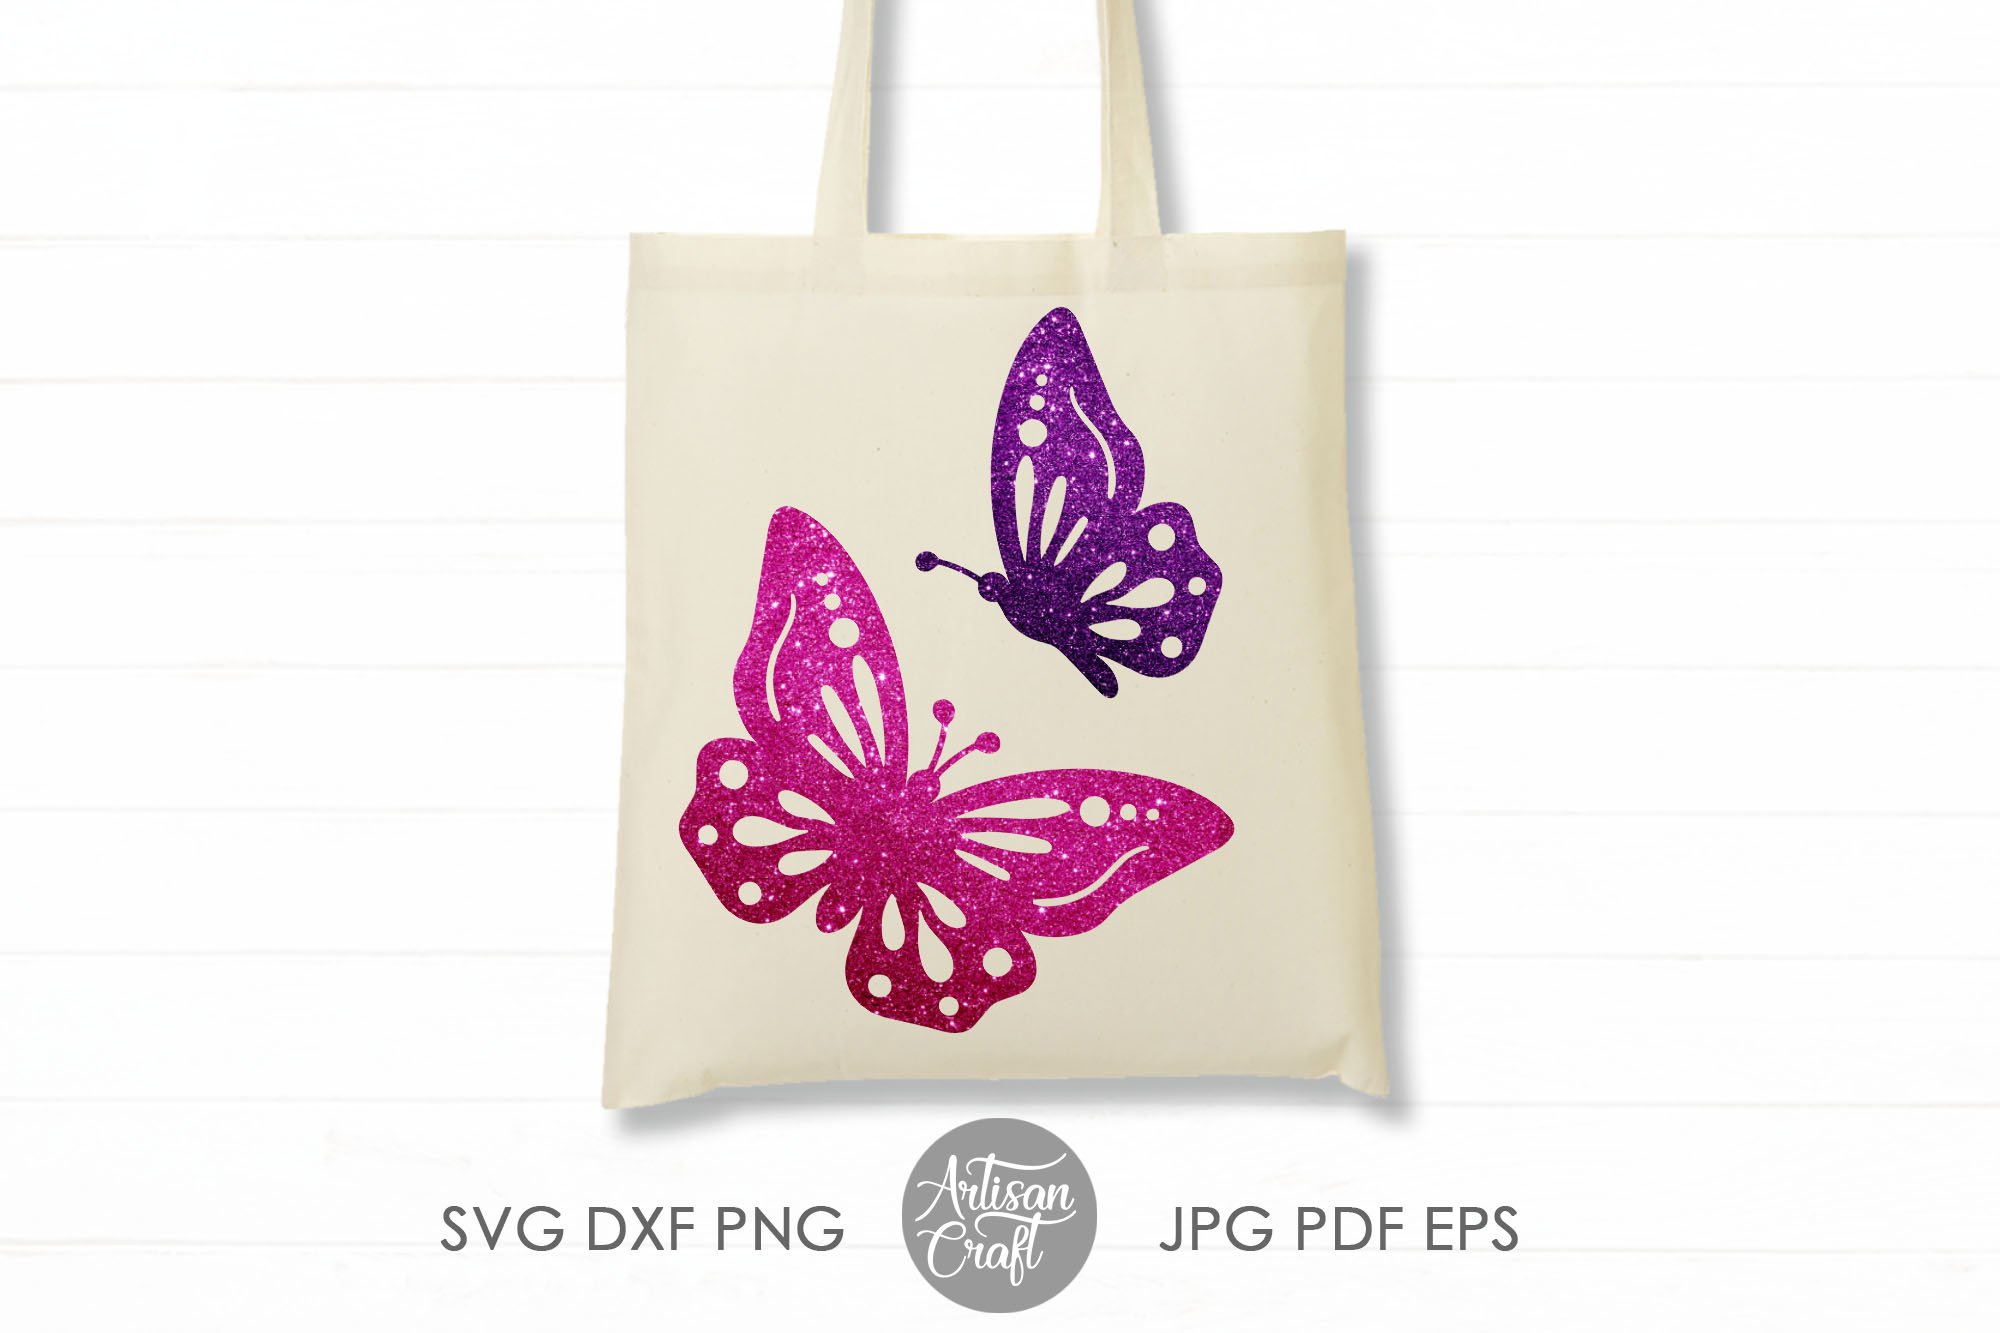 Butterfly clipart, butterfly SVG, cut files, layered svg example image 5